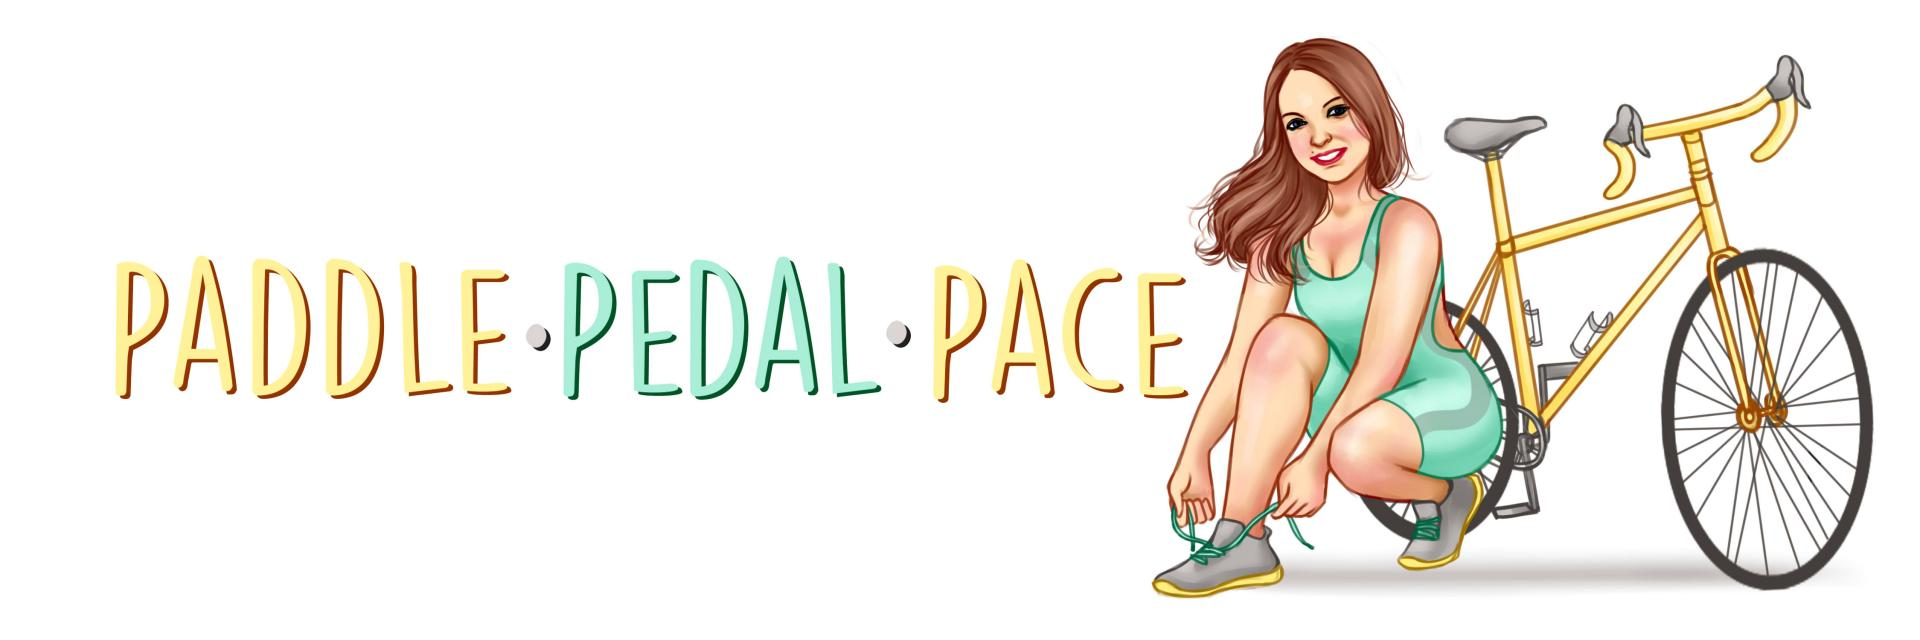 Paddle Pedal Pace